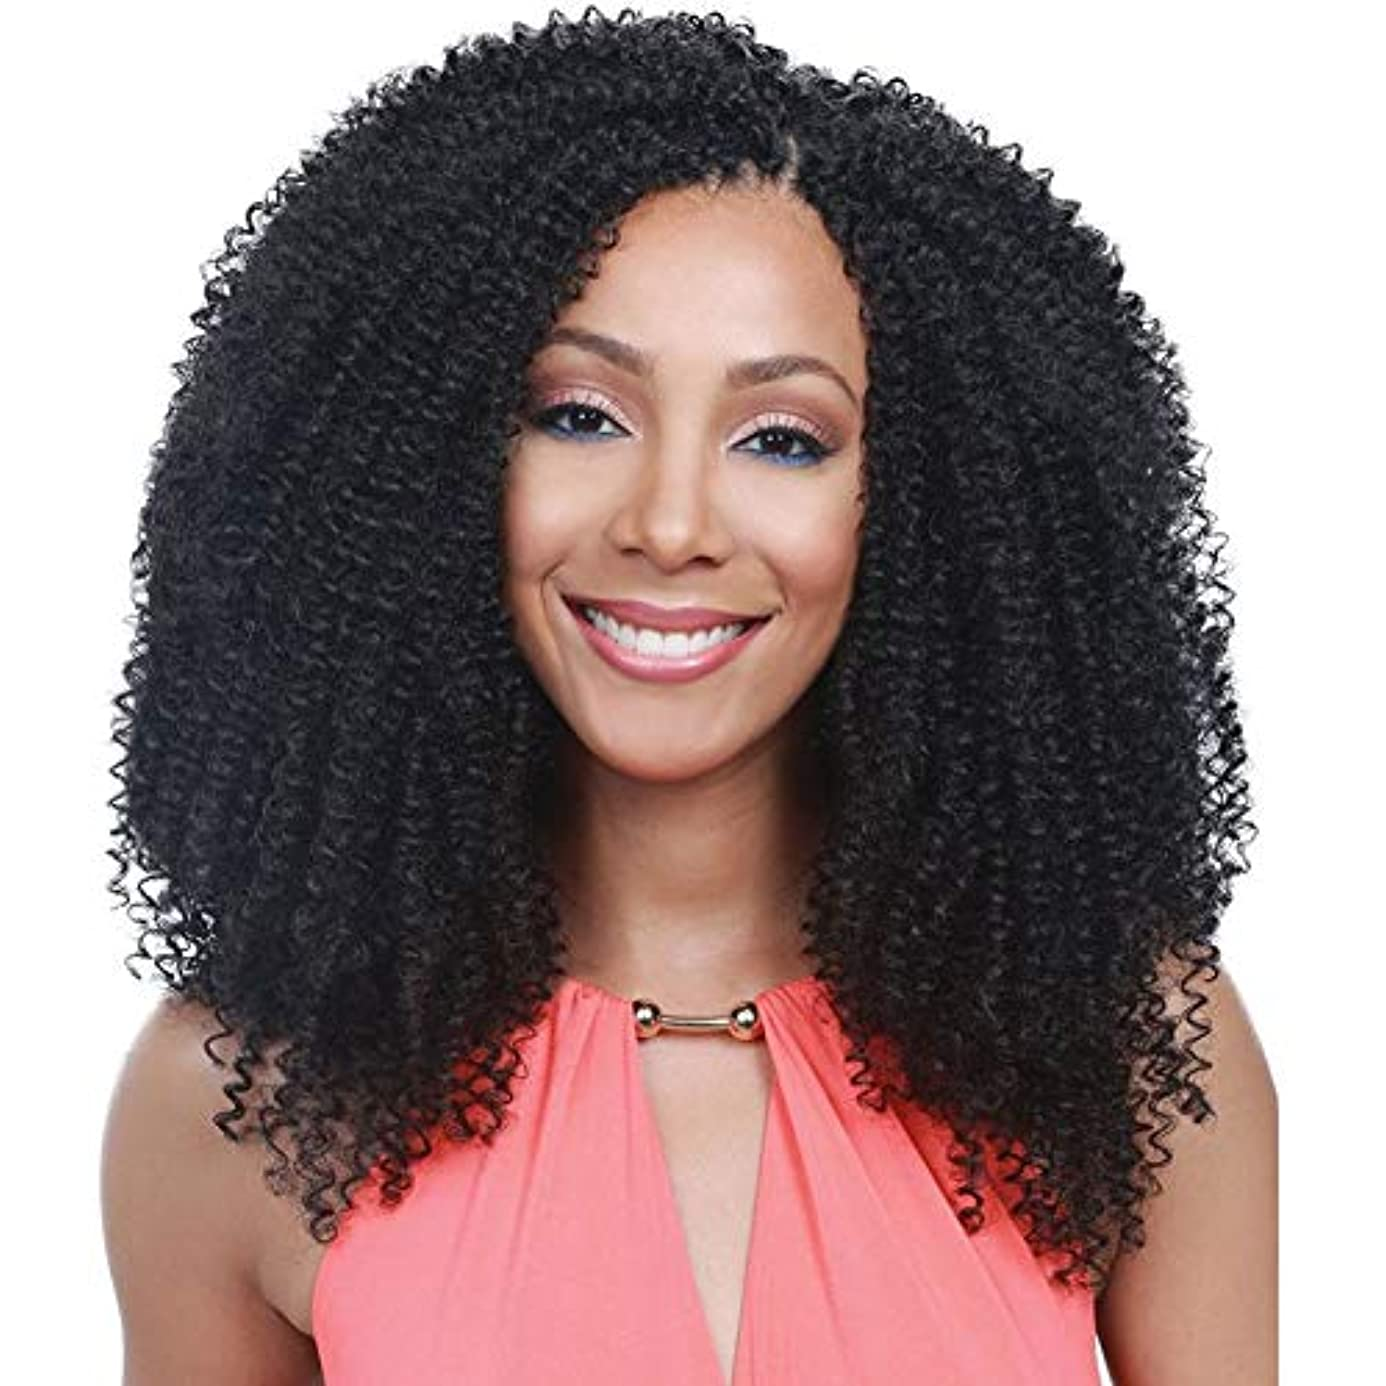 Armmu Lace Front Wigs Afro Kinky Curly Synthetic Wigs for Women - Full Hair Natural Black, Shoulder Length, Deep Right L Part, 20 gkt1948769